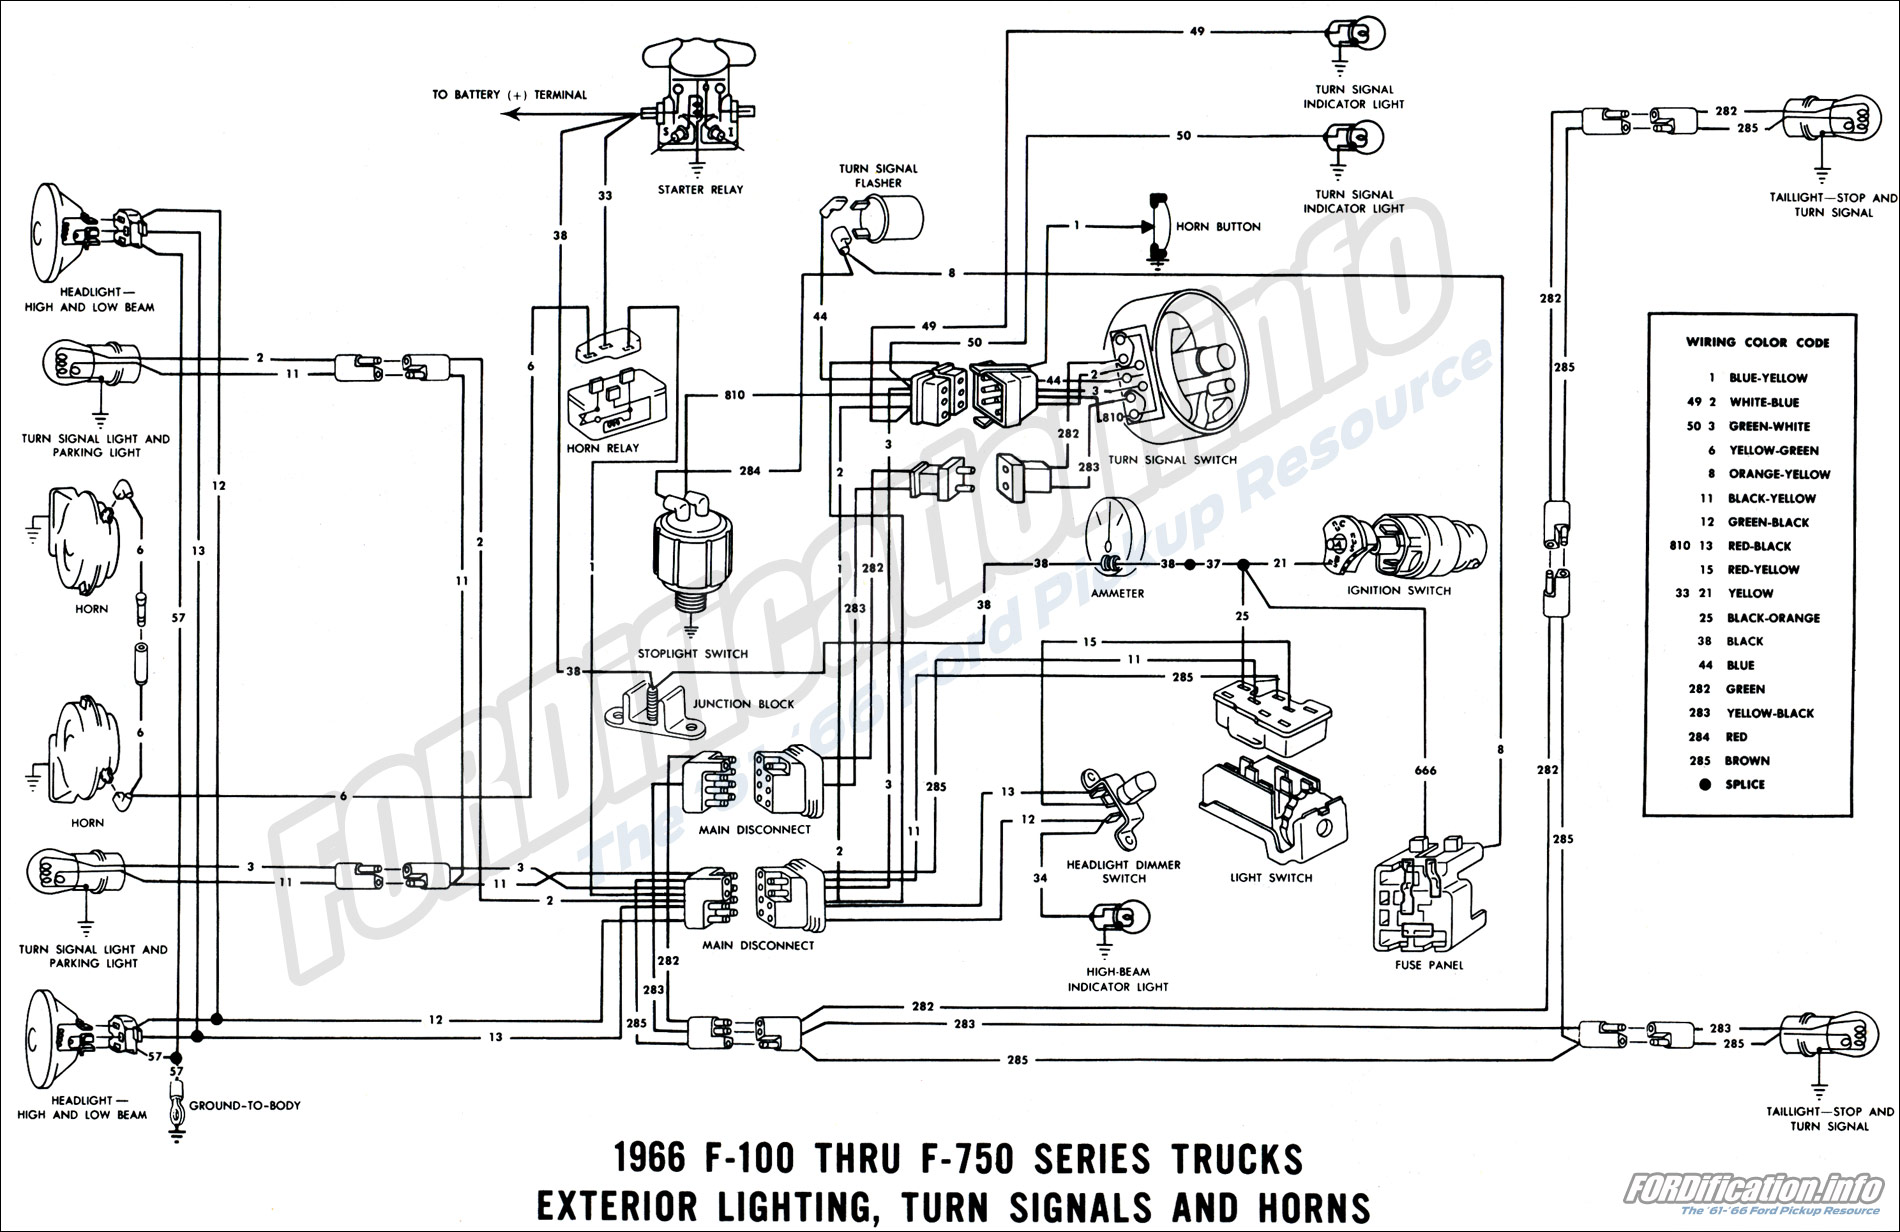 Wiring Diagram For 66 Ford F100 17 aerovitashop de